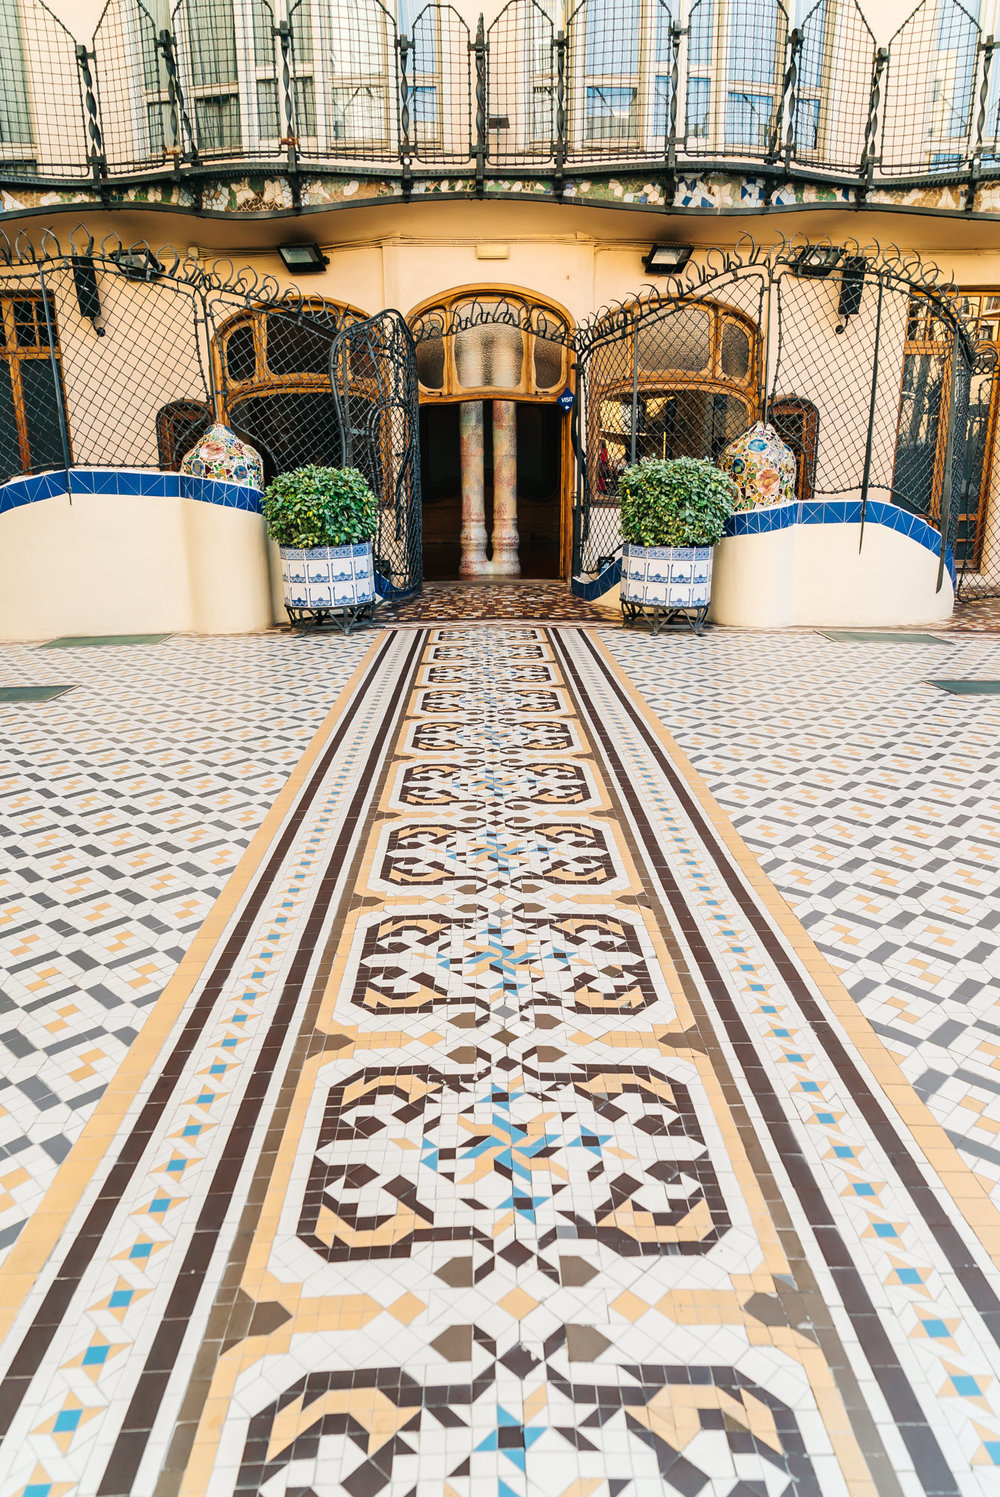 Loved the beautiful tiles of this courtyard